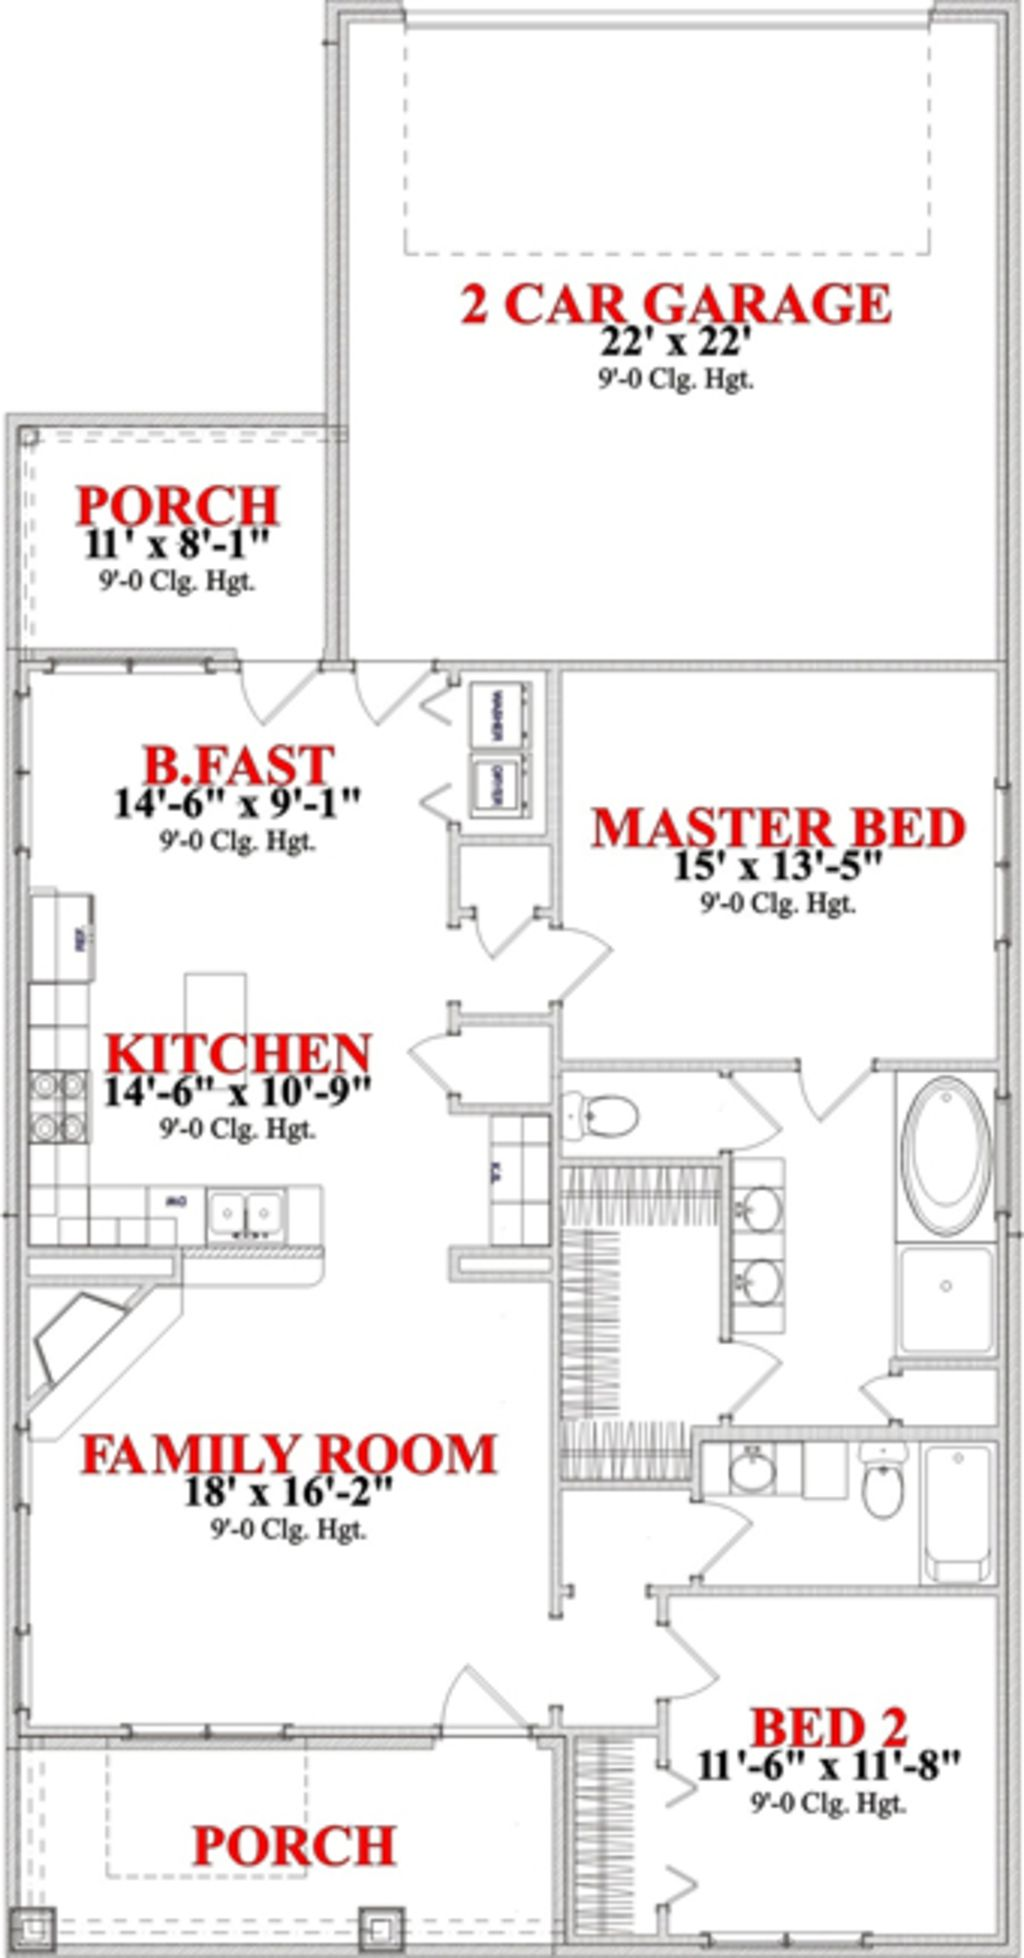 bungalow style house plan 2 beds 2 baths 1367 sq ft plan 63 284